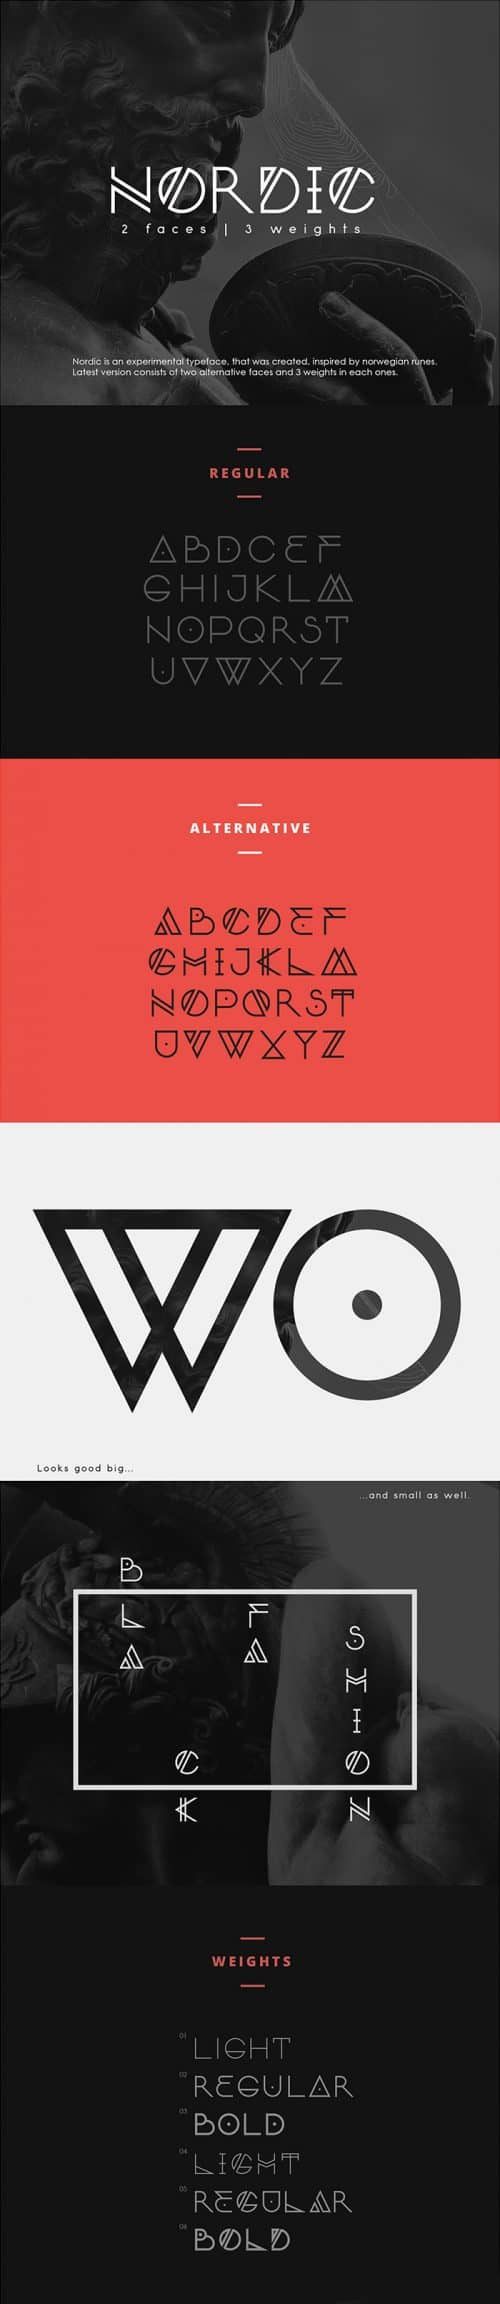 Download the Nordic-Typeface